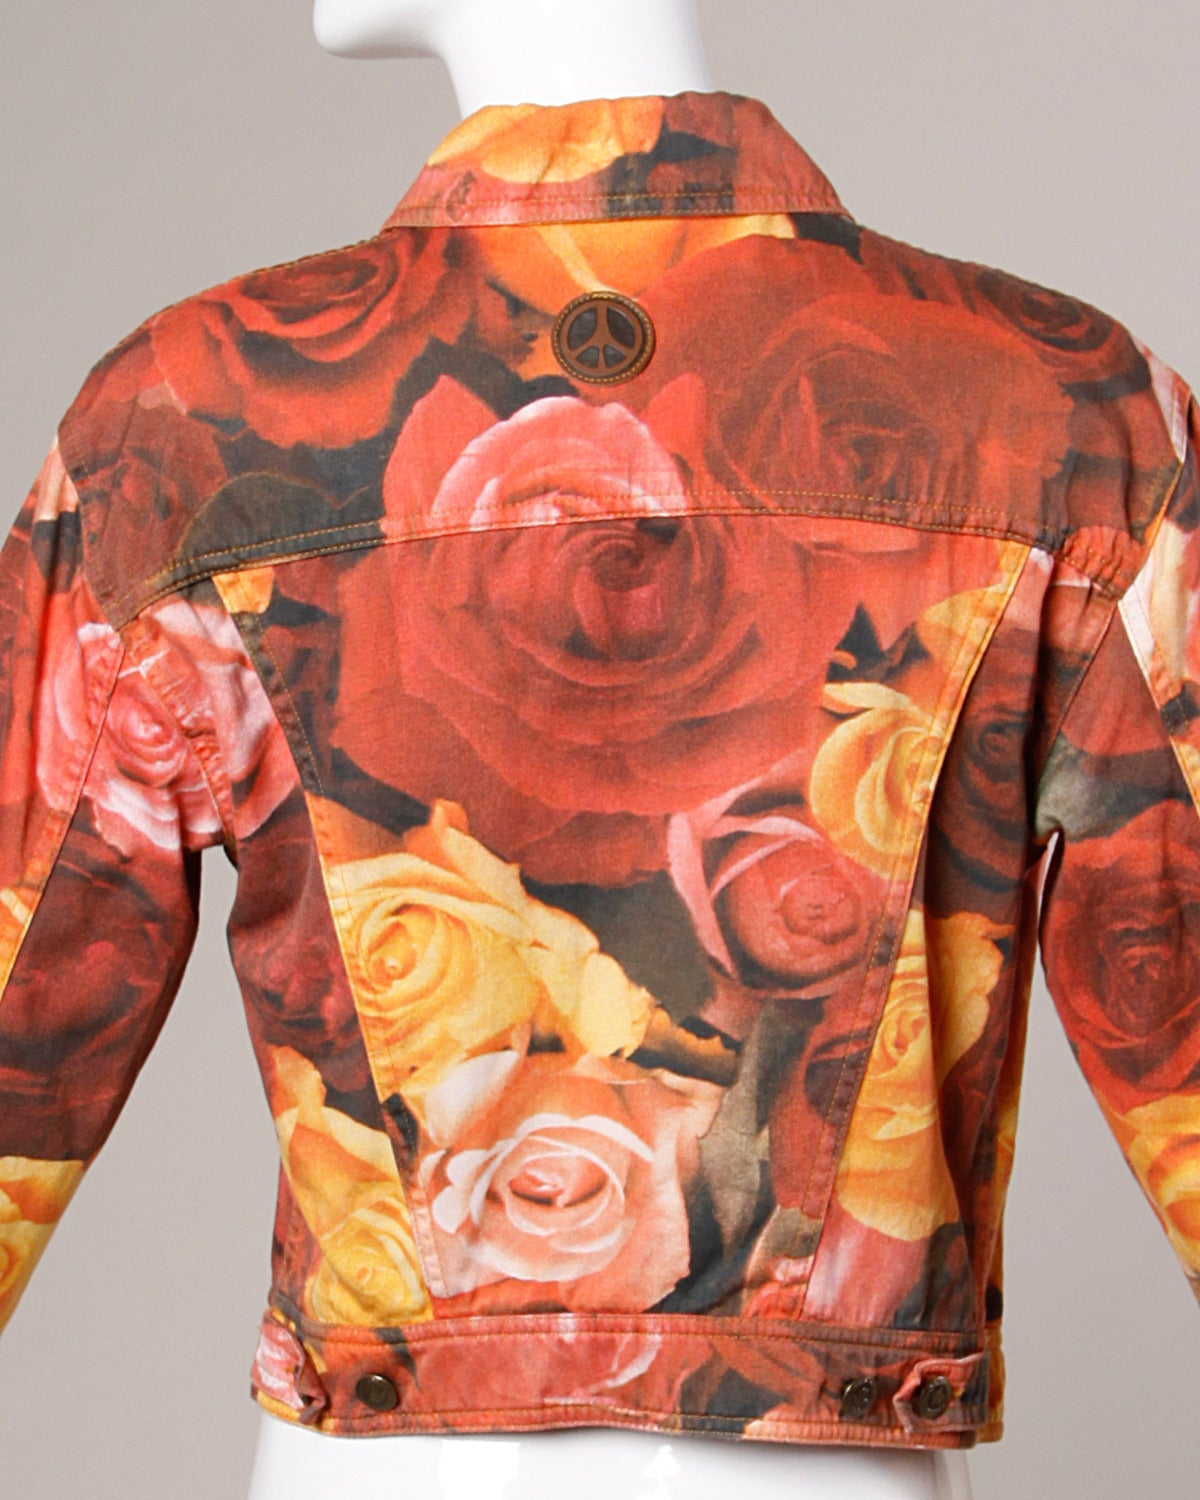 Light weight vintage denim jacket by Moschino with a photo floral print.  Details:  Unlined Front Button Closure/ Button Closure At Wrist Marked Size: I 44/ US 10/ F 40/ D 40/ GB 14 Color: Yellow/ Orange/ Rouge/ Green Fabric: Cotton Label: